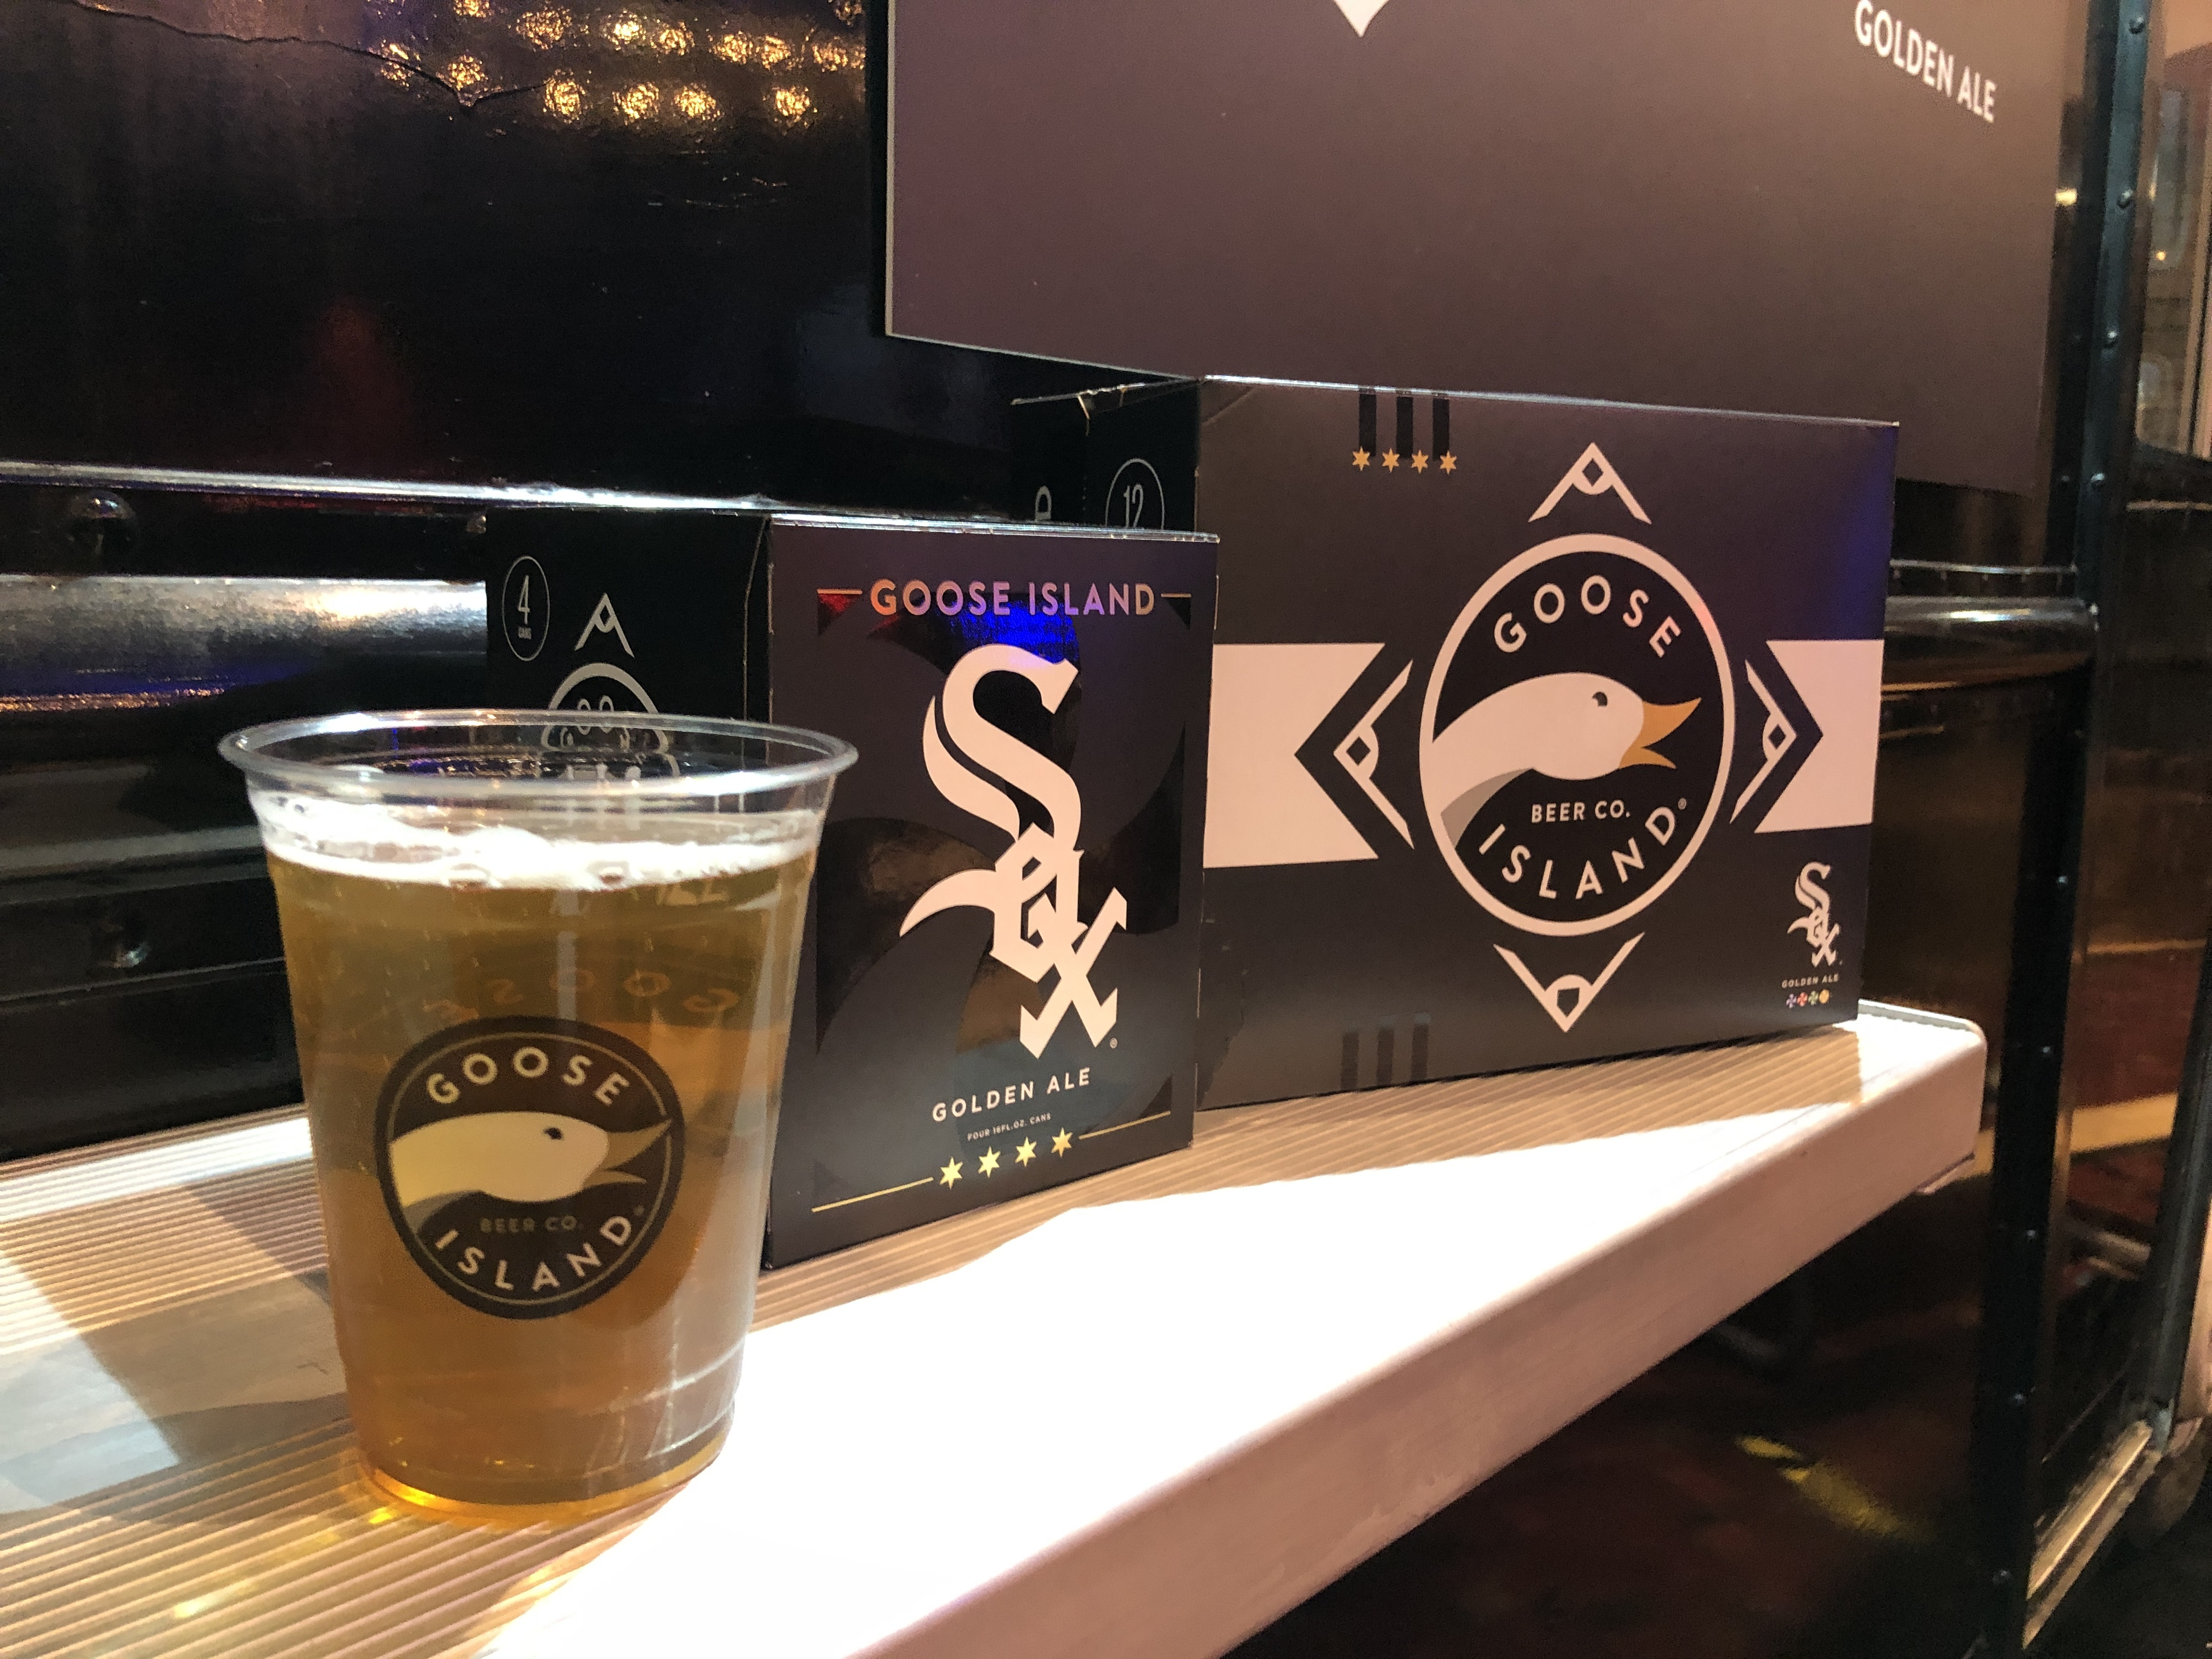 Cups, cases, and boxes of Goose Island's new White Sox beer.